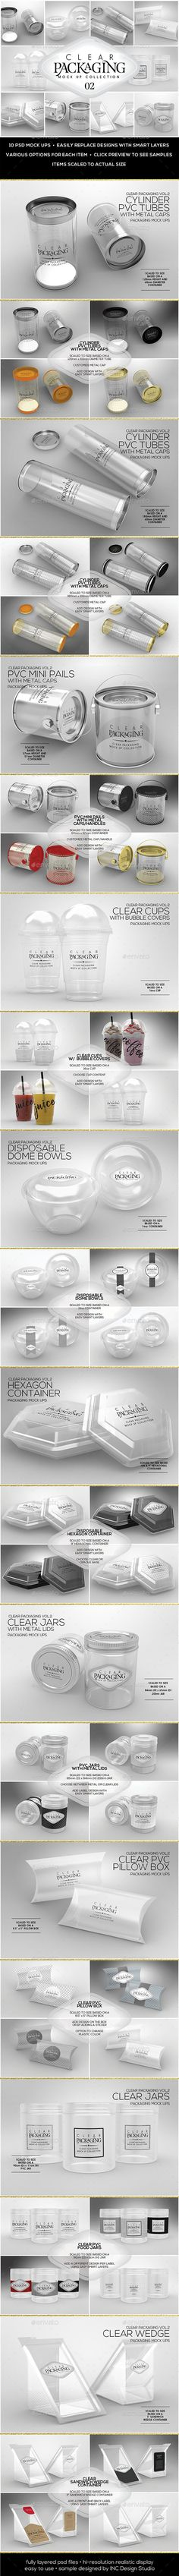 Clear Packaging MockUps 02 by incybautista Volume 2: Clear Plastic Food Containers Packaging Mock Up Collection10 Plastic Container Mock Ups in various shapes and sizes—per